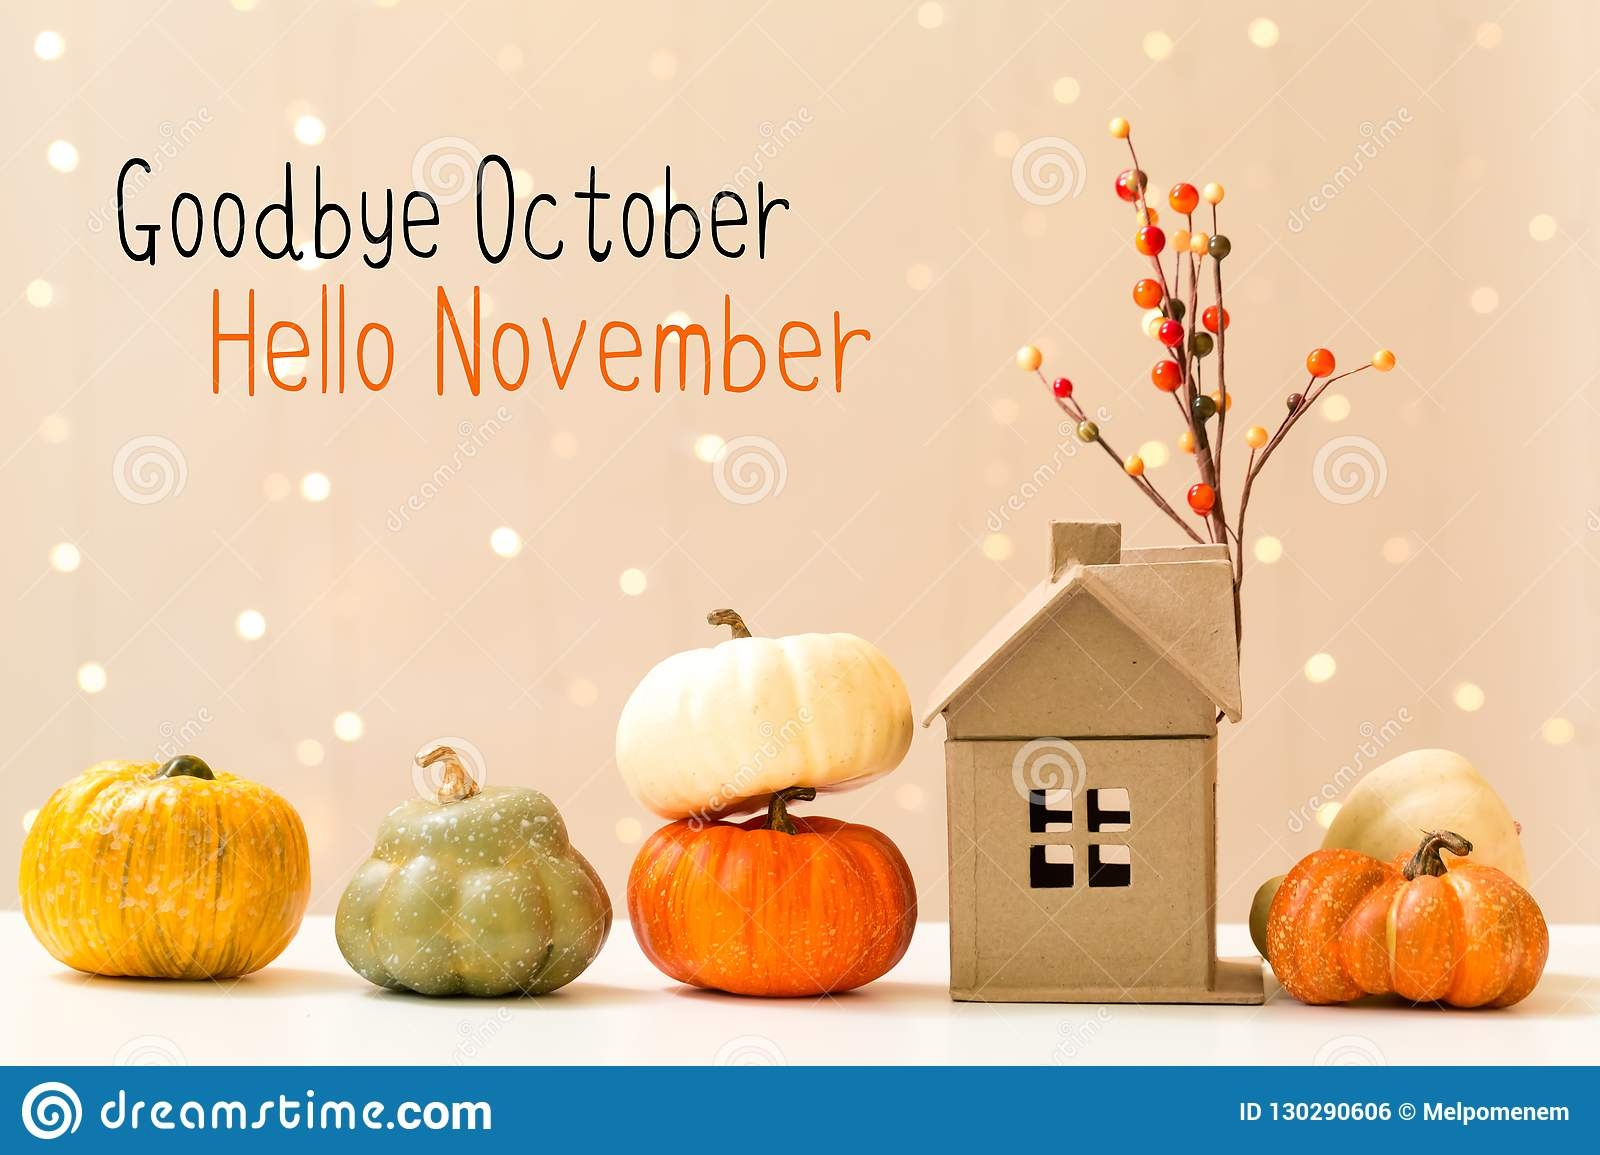 Goode October Hello November Message With Pumpkins With House